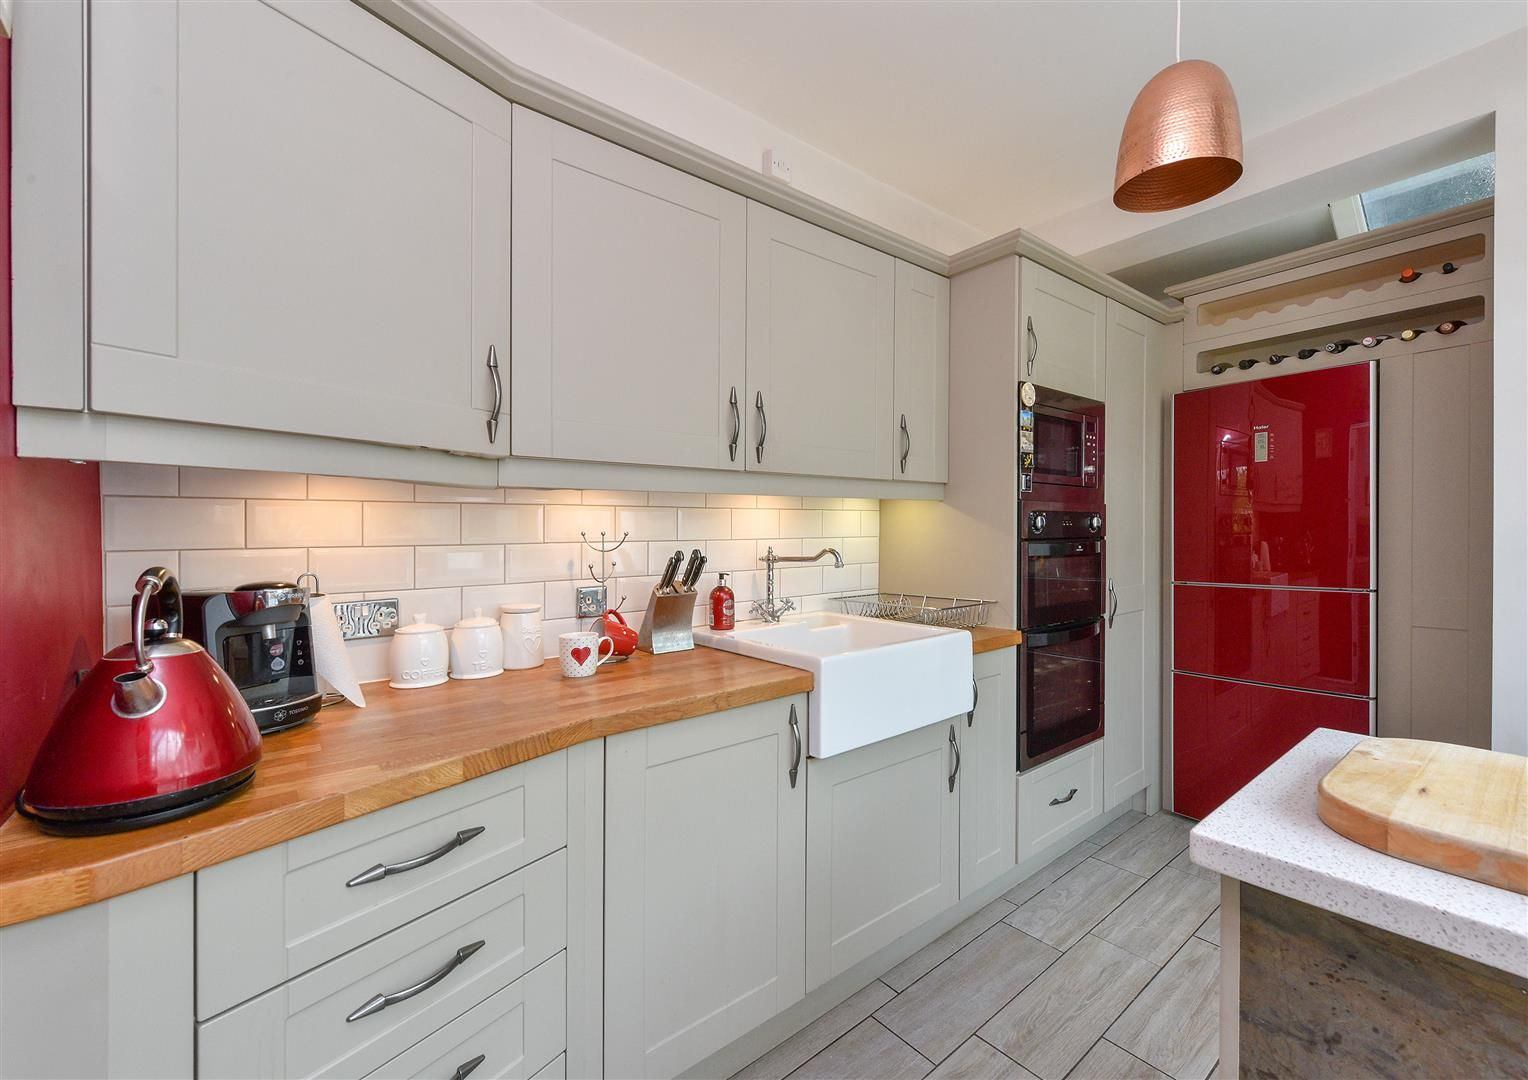 4 bed detached for sale in Swindon  - Property Image 7